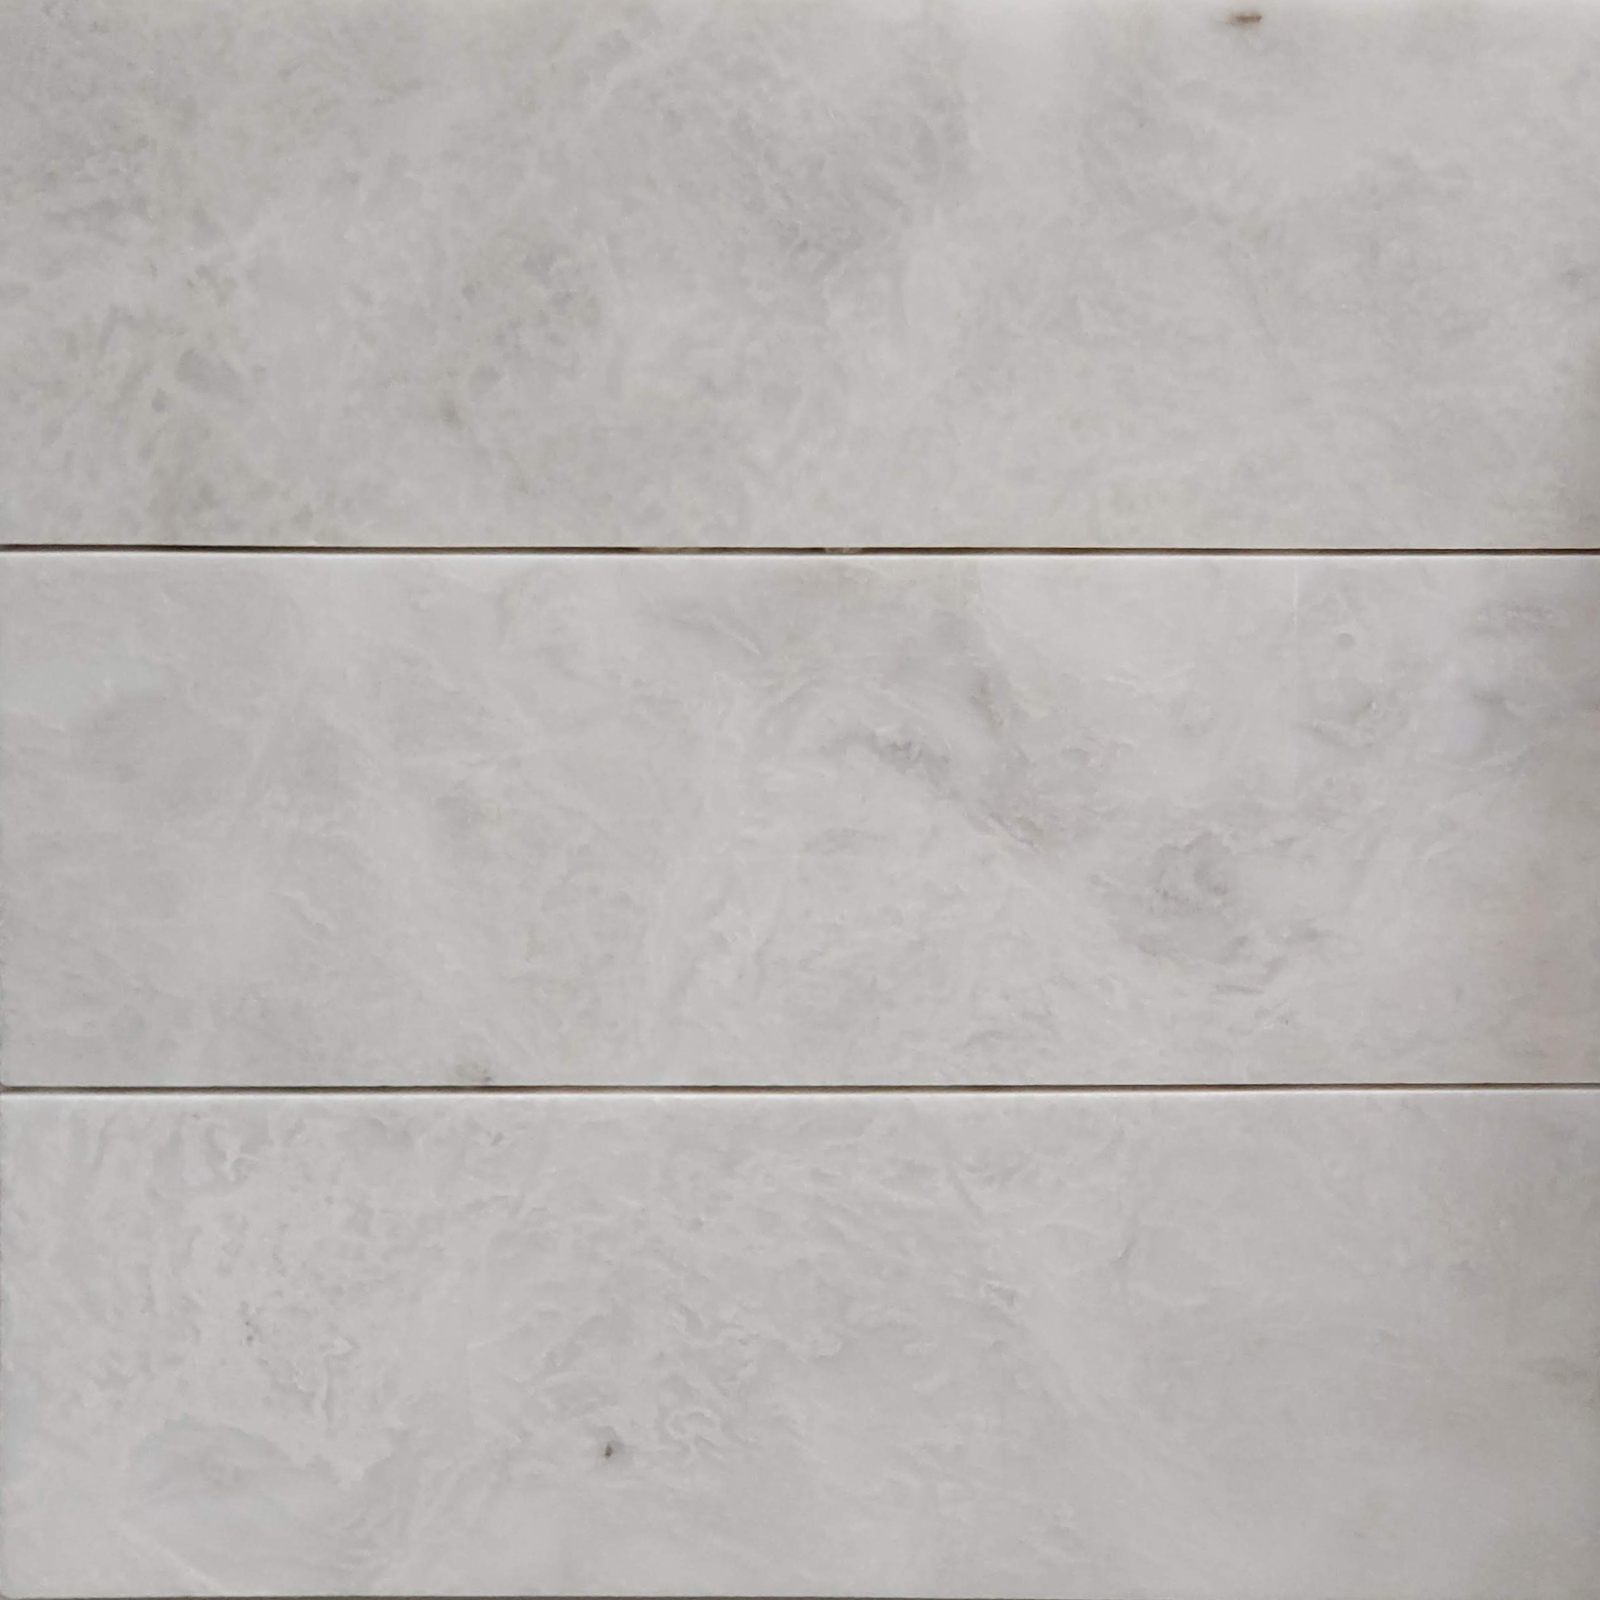 4x12 Alaska White Marble Polished Tile